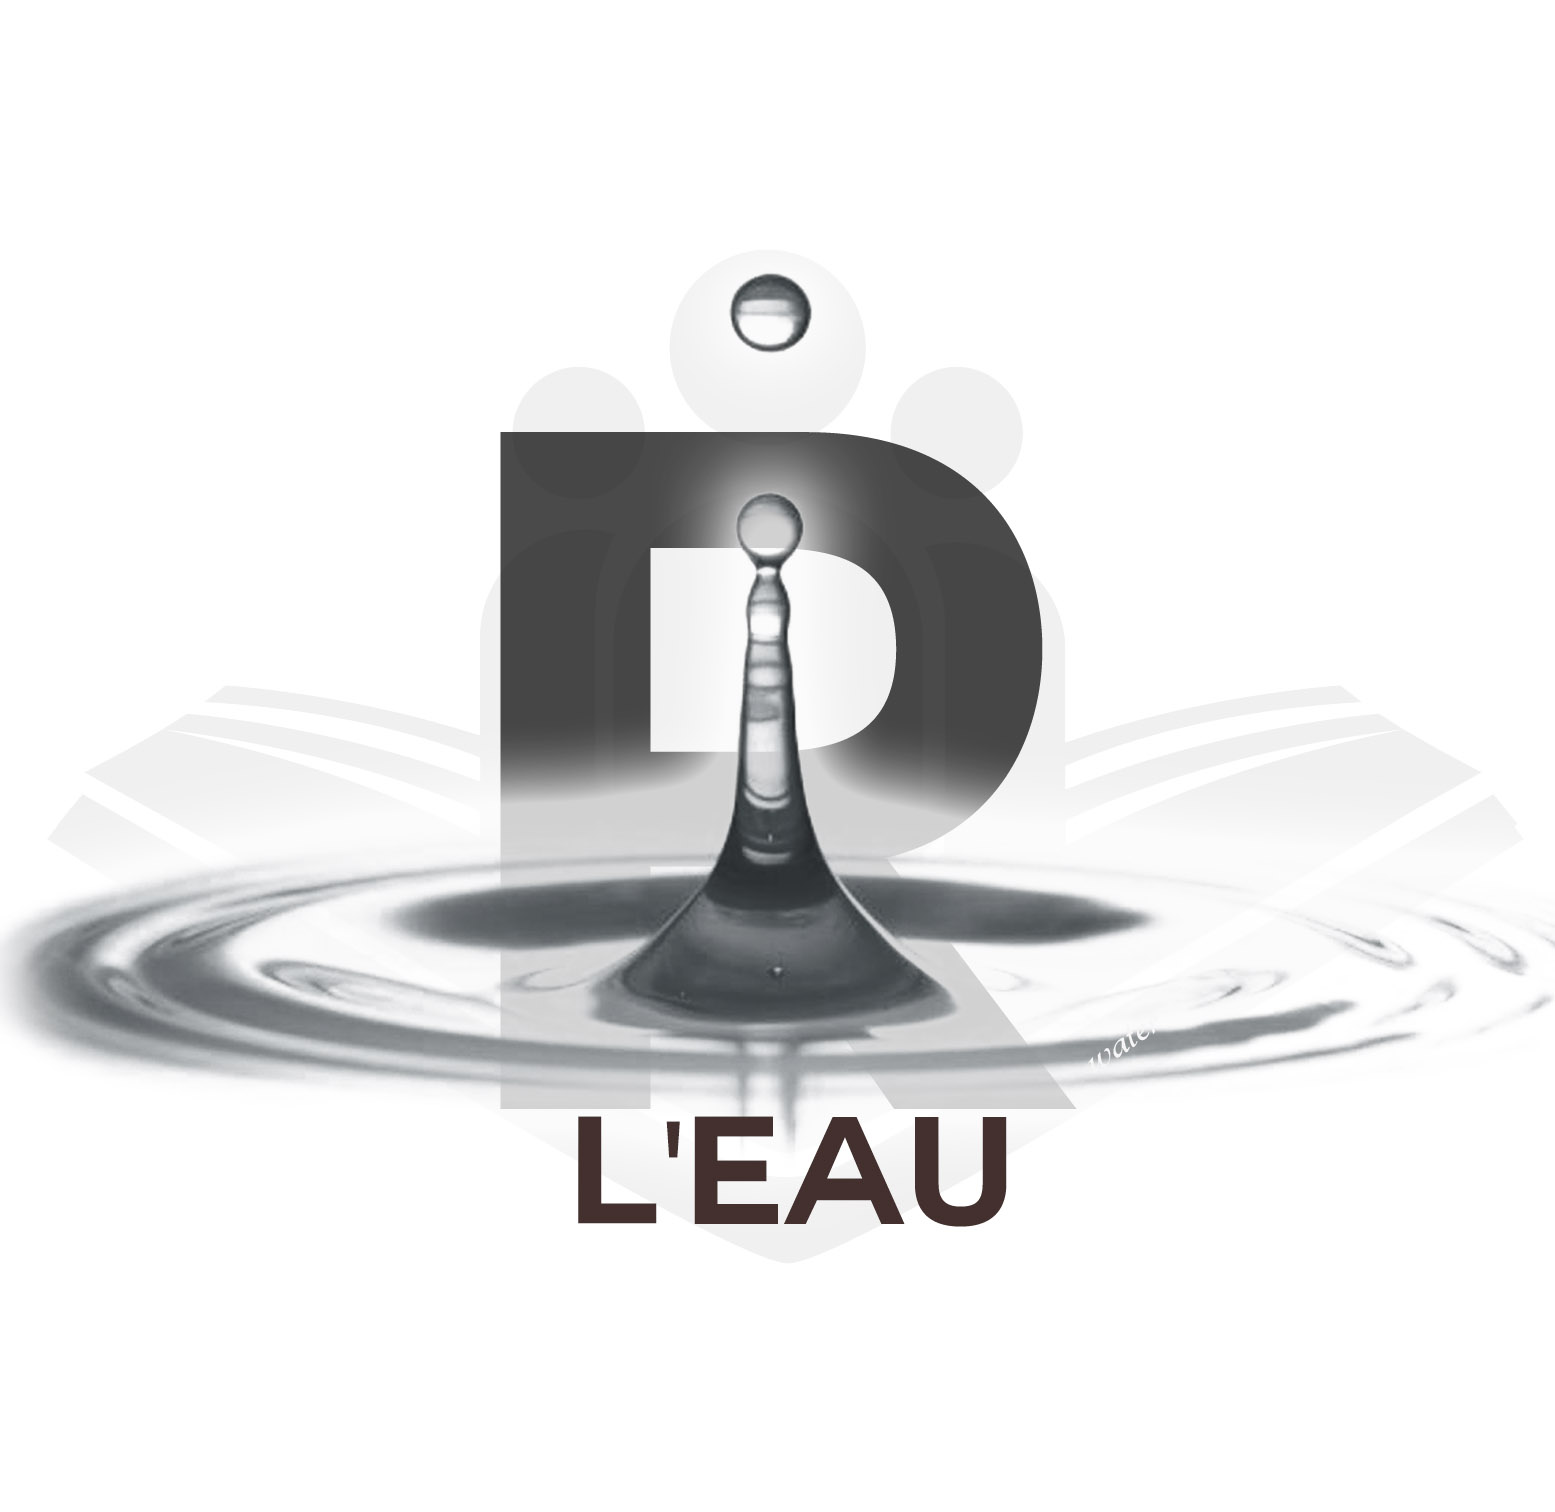 The Robottom Foundation L'eau logo